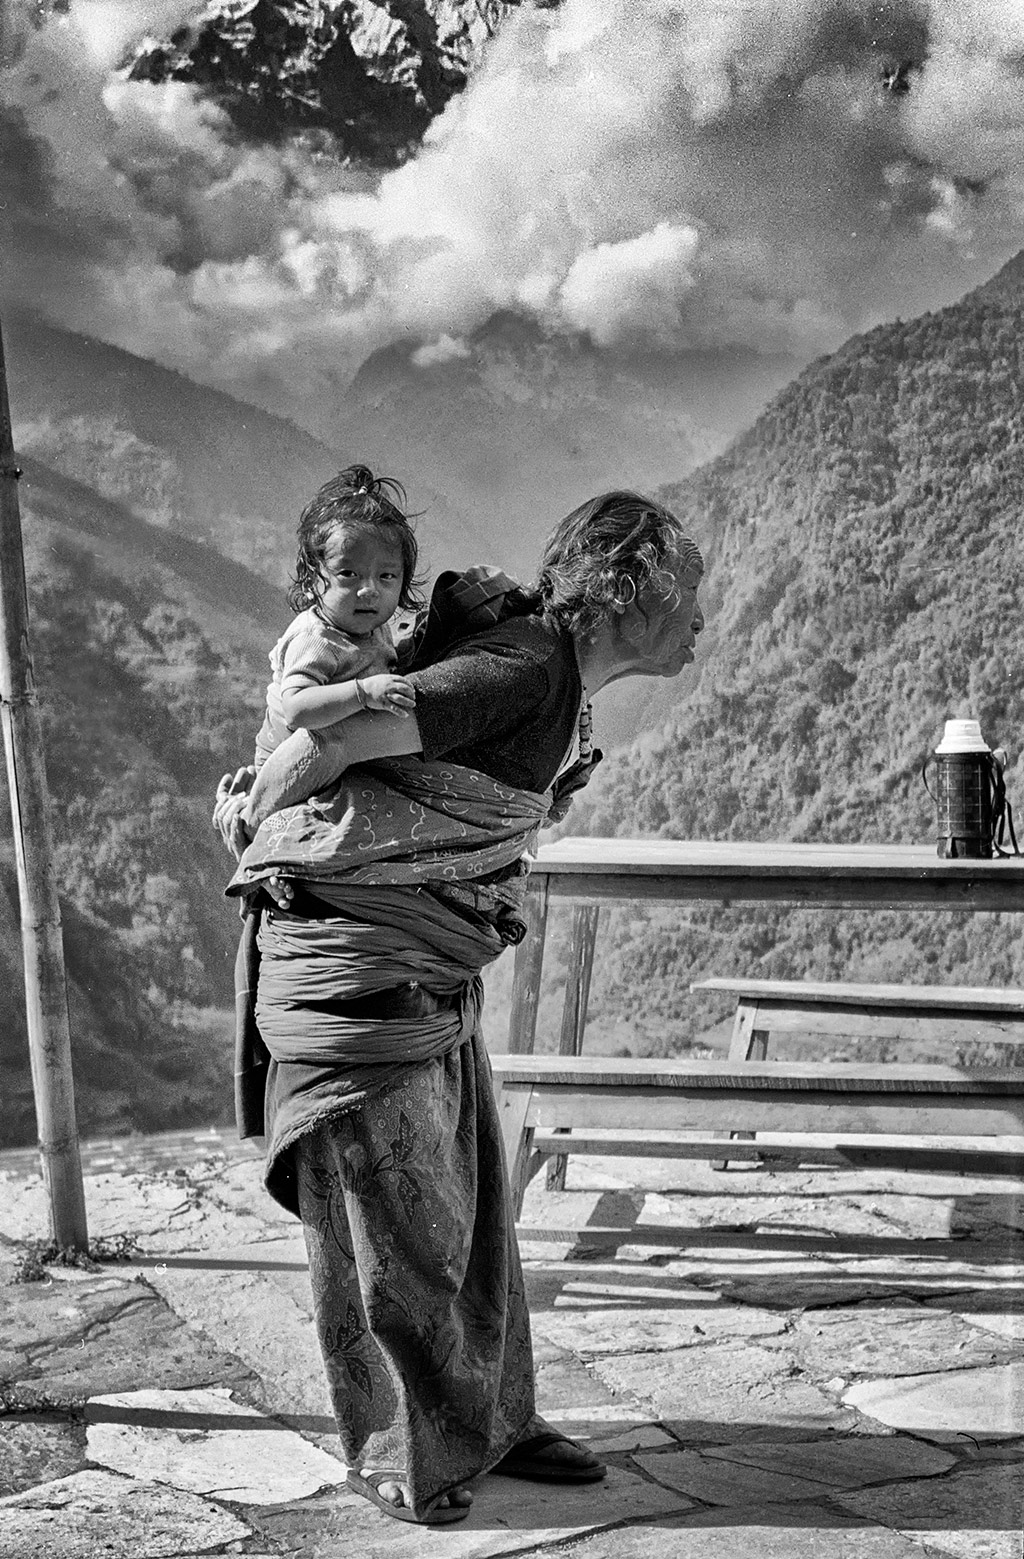 Old woman and child - near Annapurna, Nepal